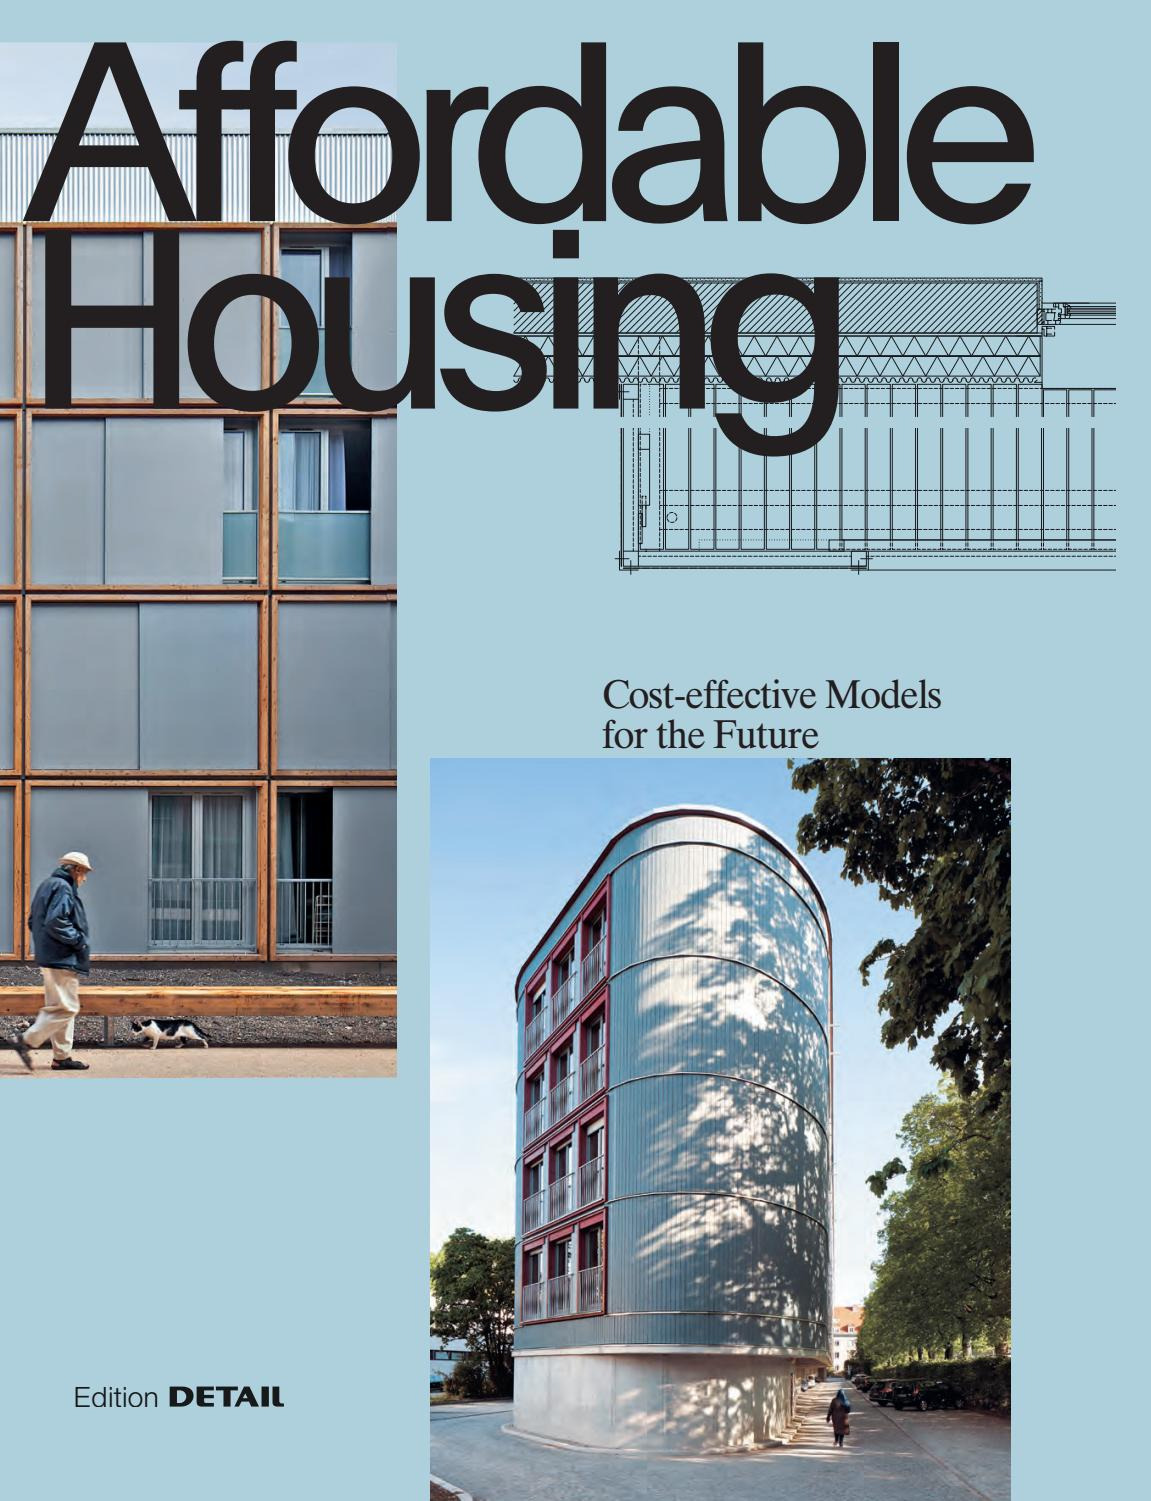 Affordable Concrete House Plans Inspirational Affordable Housing by Detail issuu